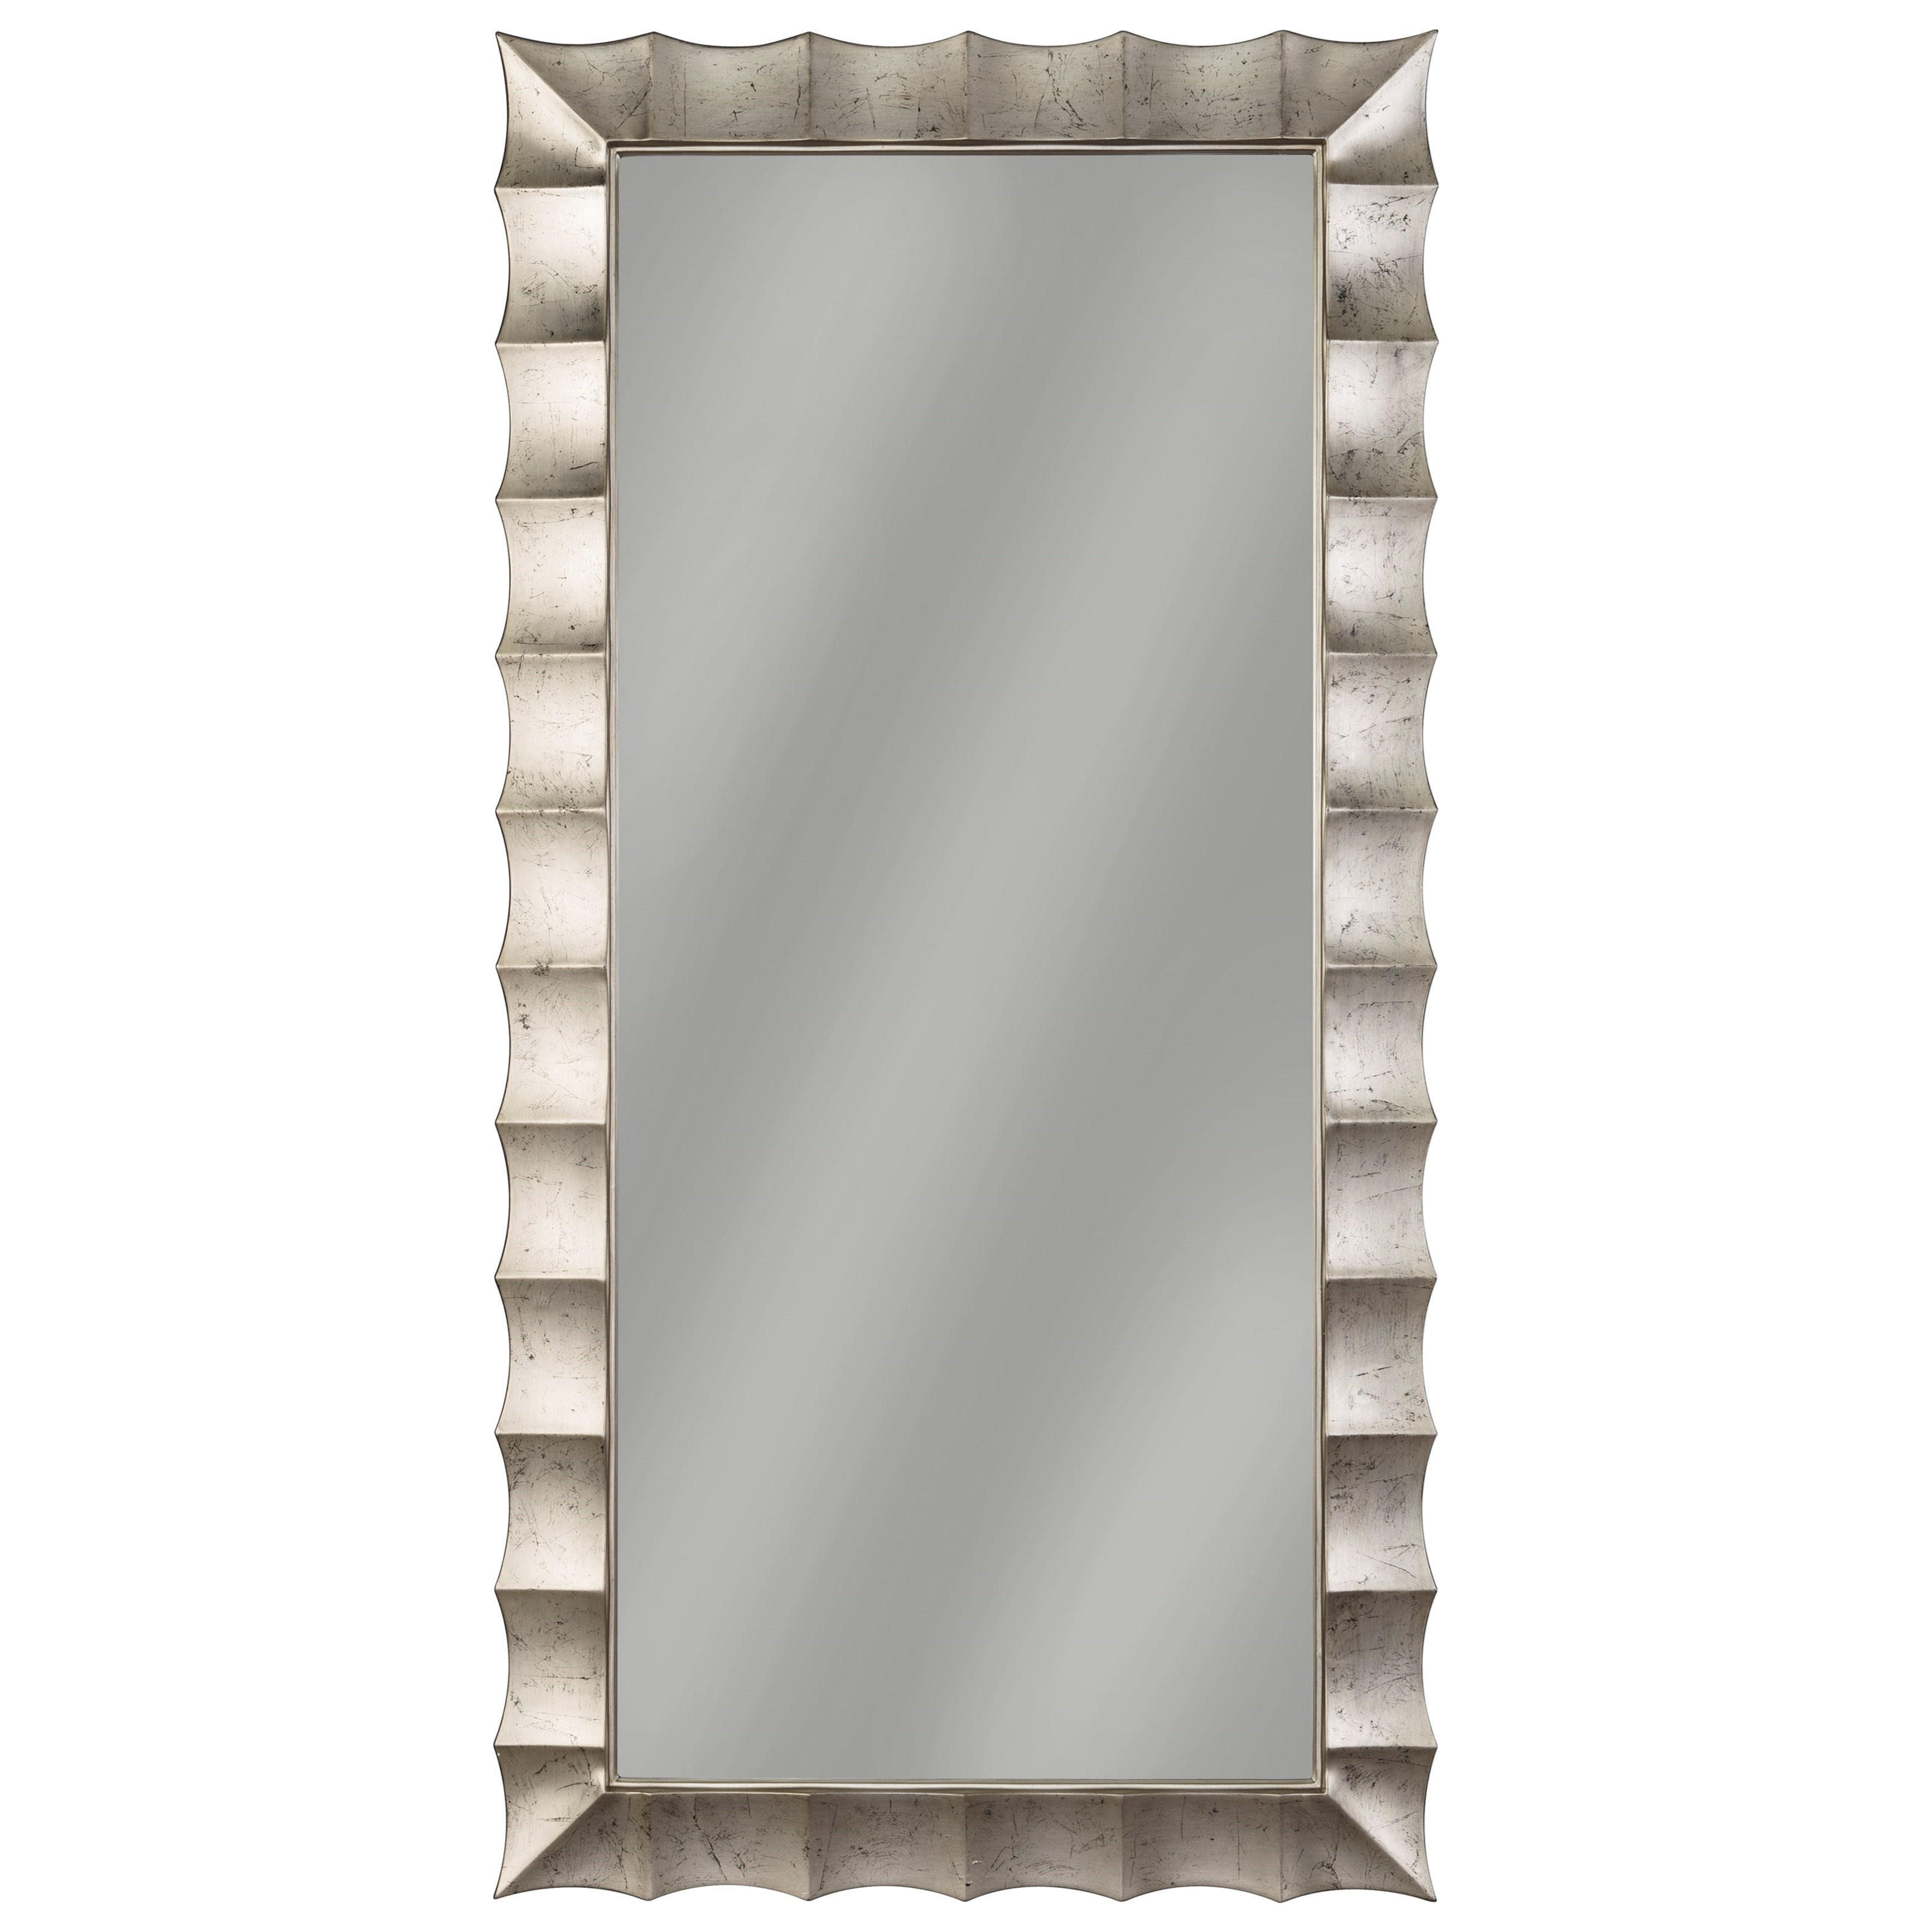 Signature Design by Ashley Accent Mirrors Laasya Antique Silver Finish Accent Mirror - Item Number: A8010122